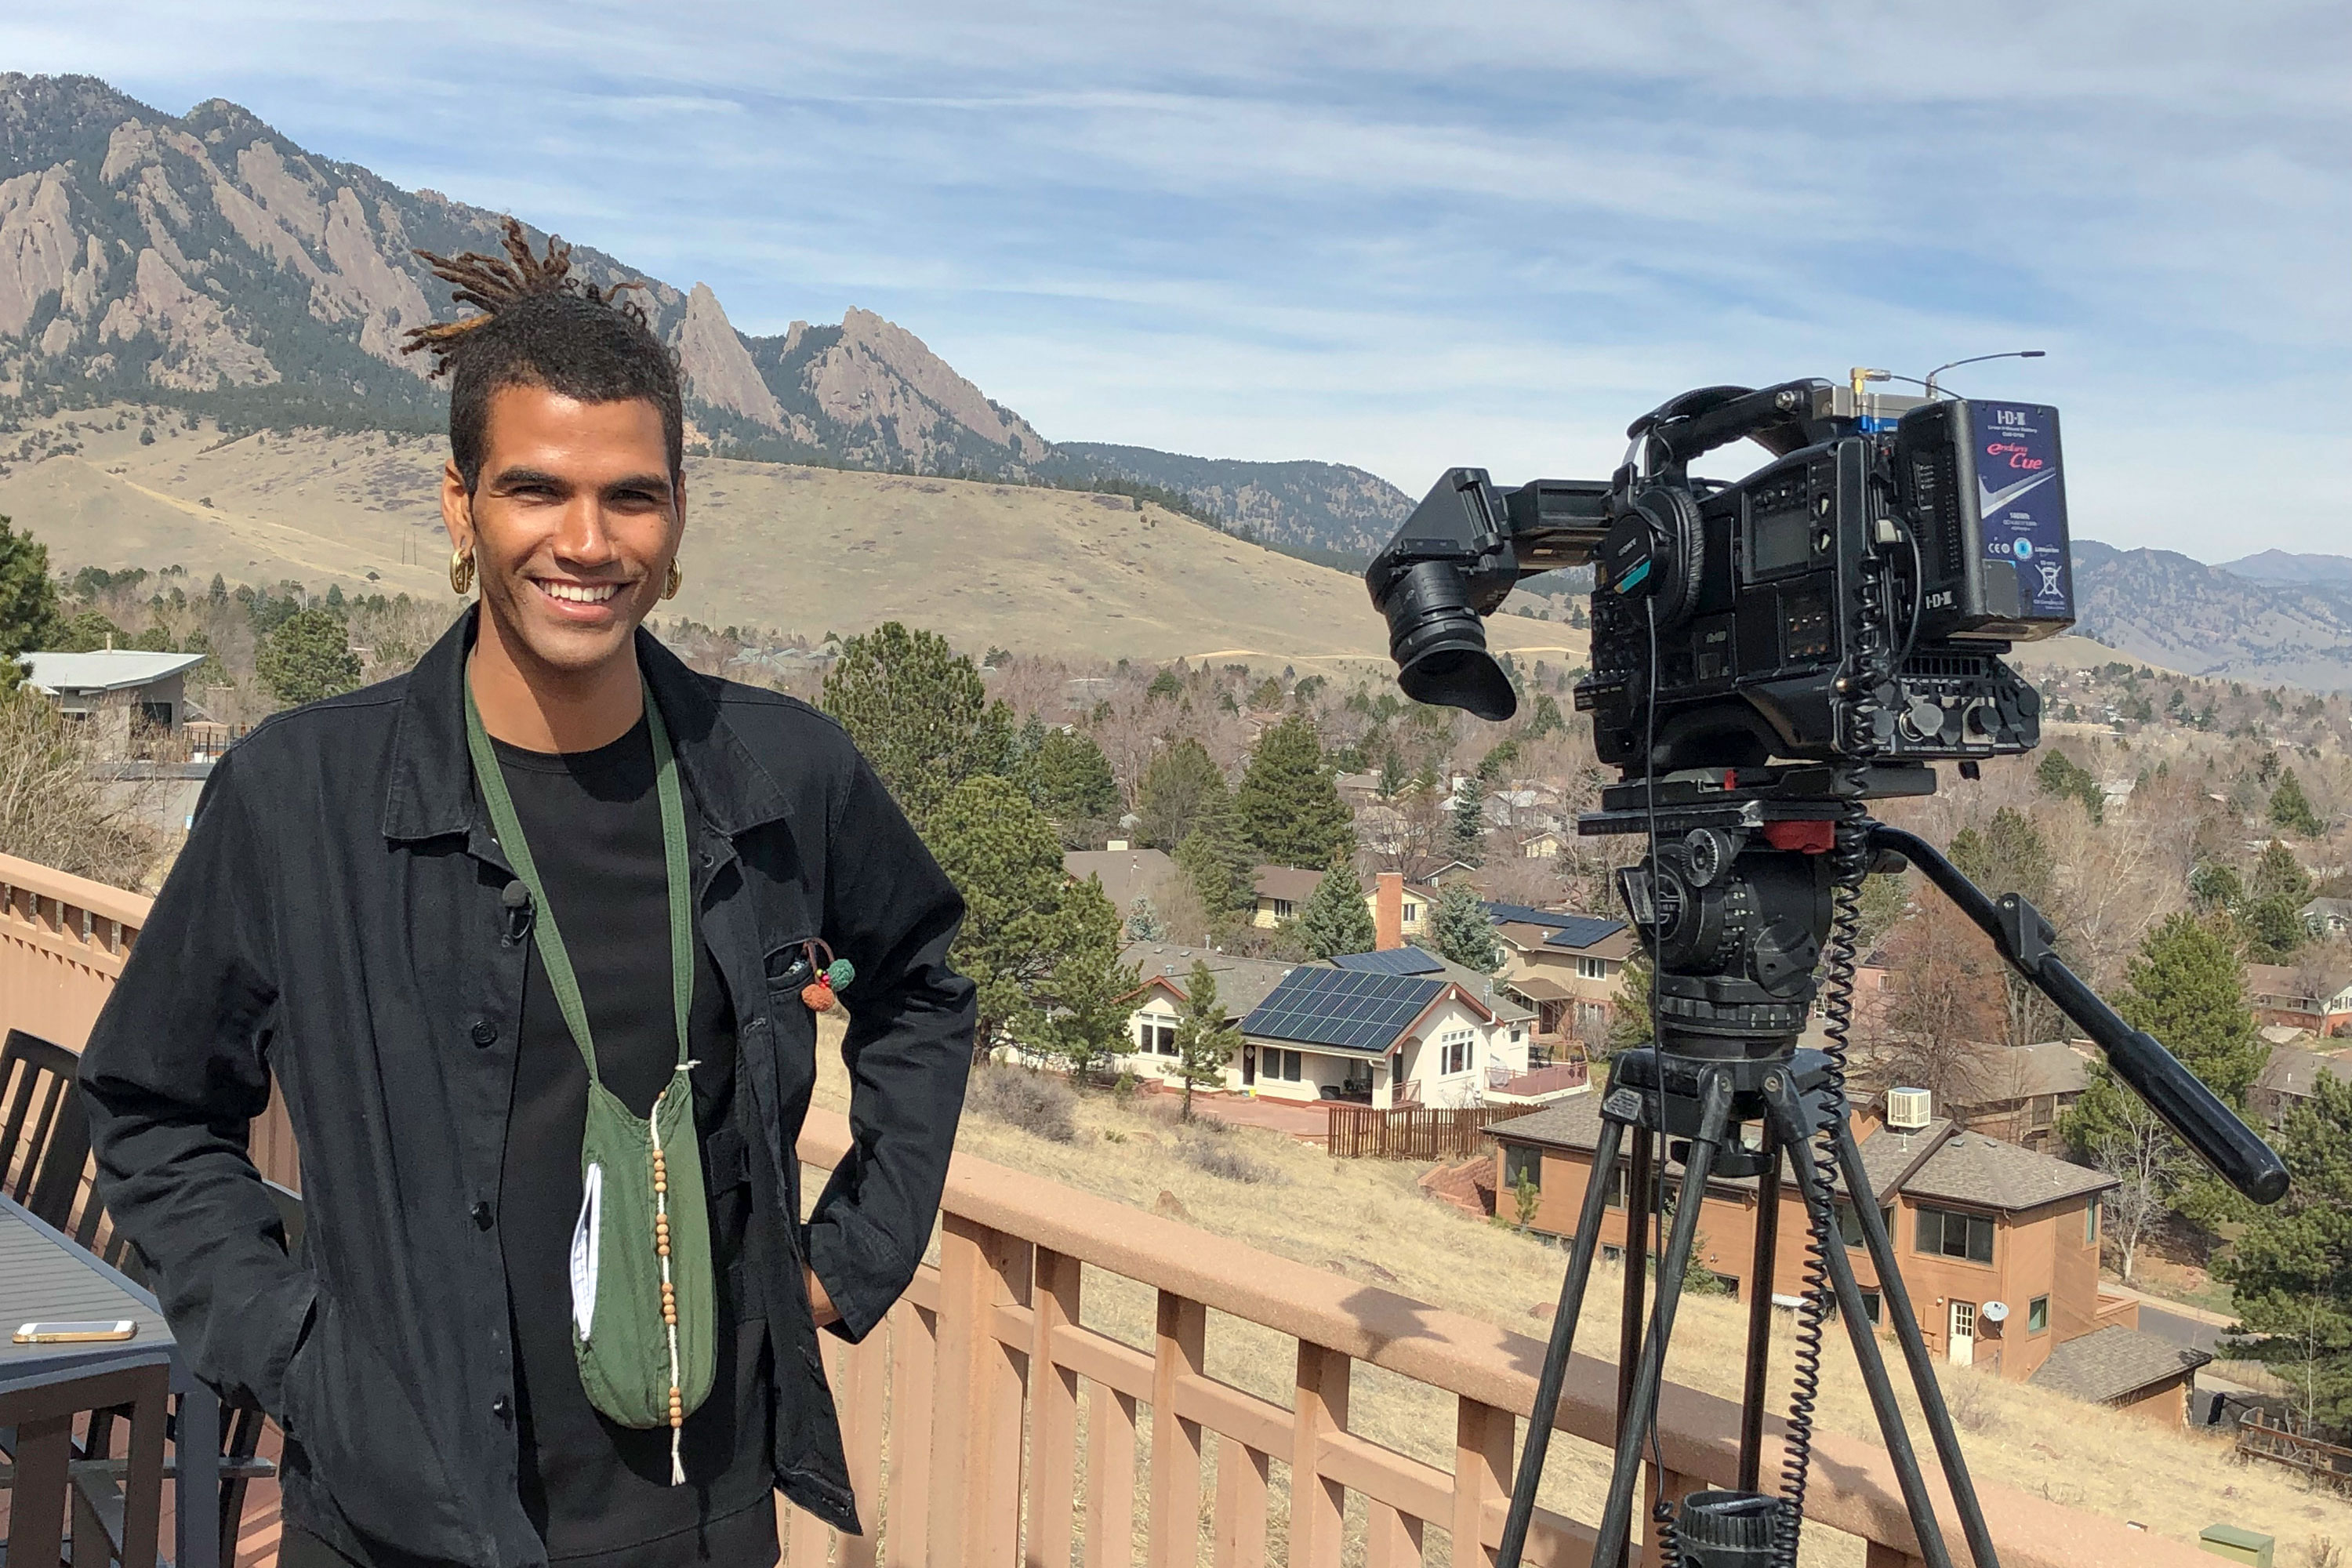 <p>In this undated photo provided by lawyer Siddhartha Rathod, Zayd Atkinson poses for a photo. Atkinson was picking up trash outside his dormitory when a white police officer in Boulder, Colo., detained him in March, 2019. The officer, John Smyly, resigned this week under an agreement with city officials who found he had violated department policies.</p>